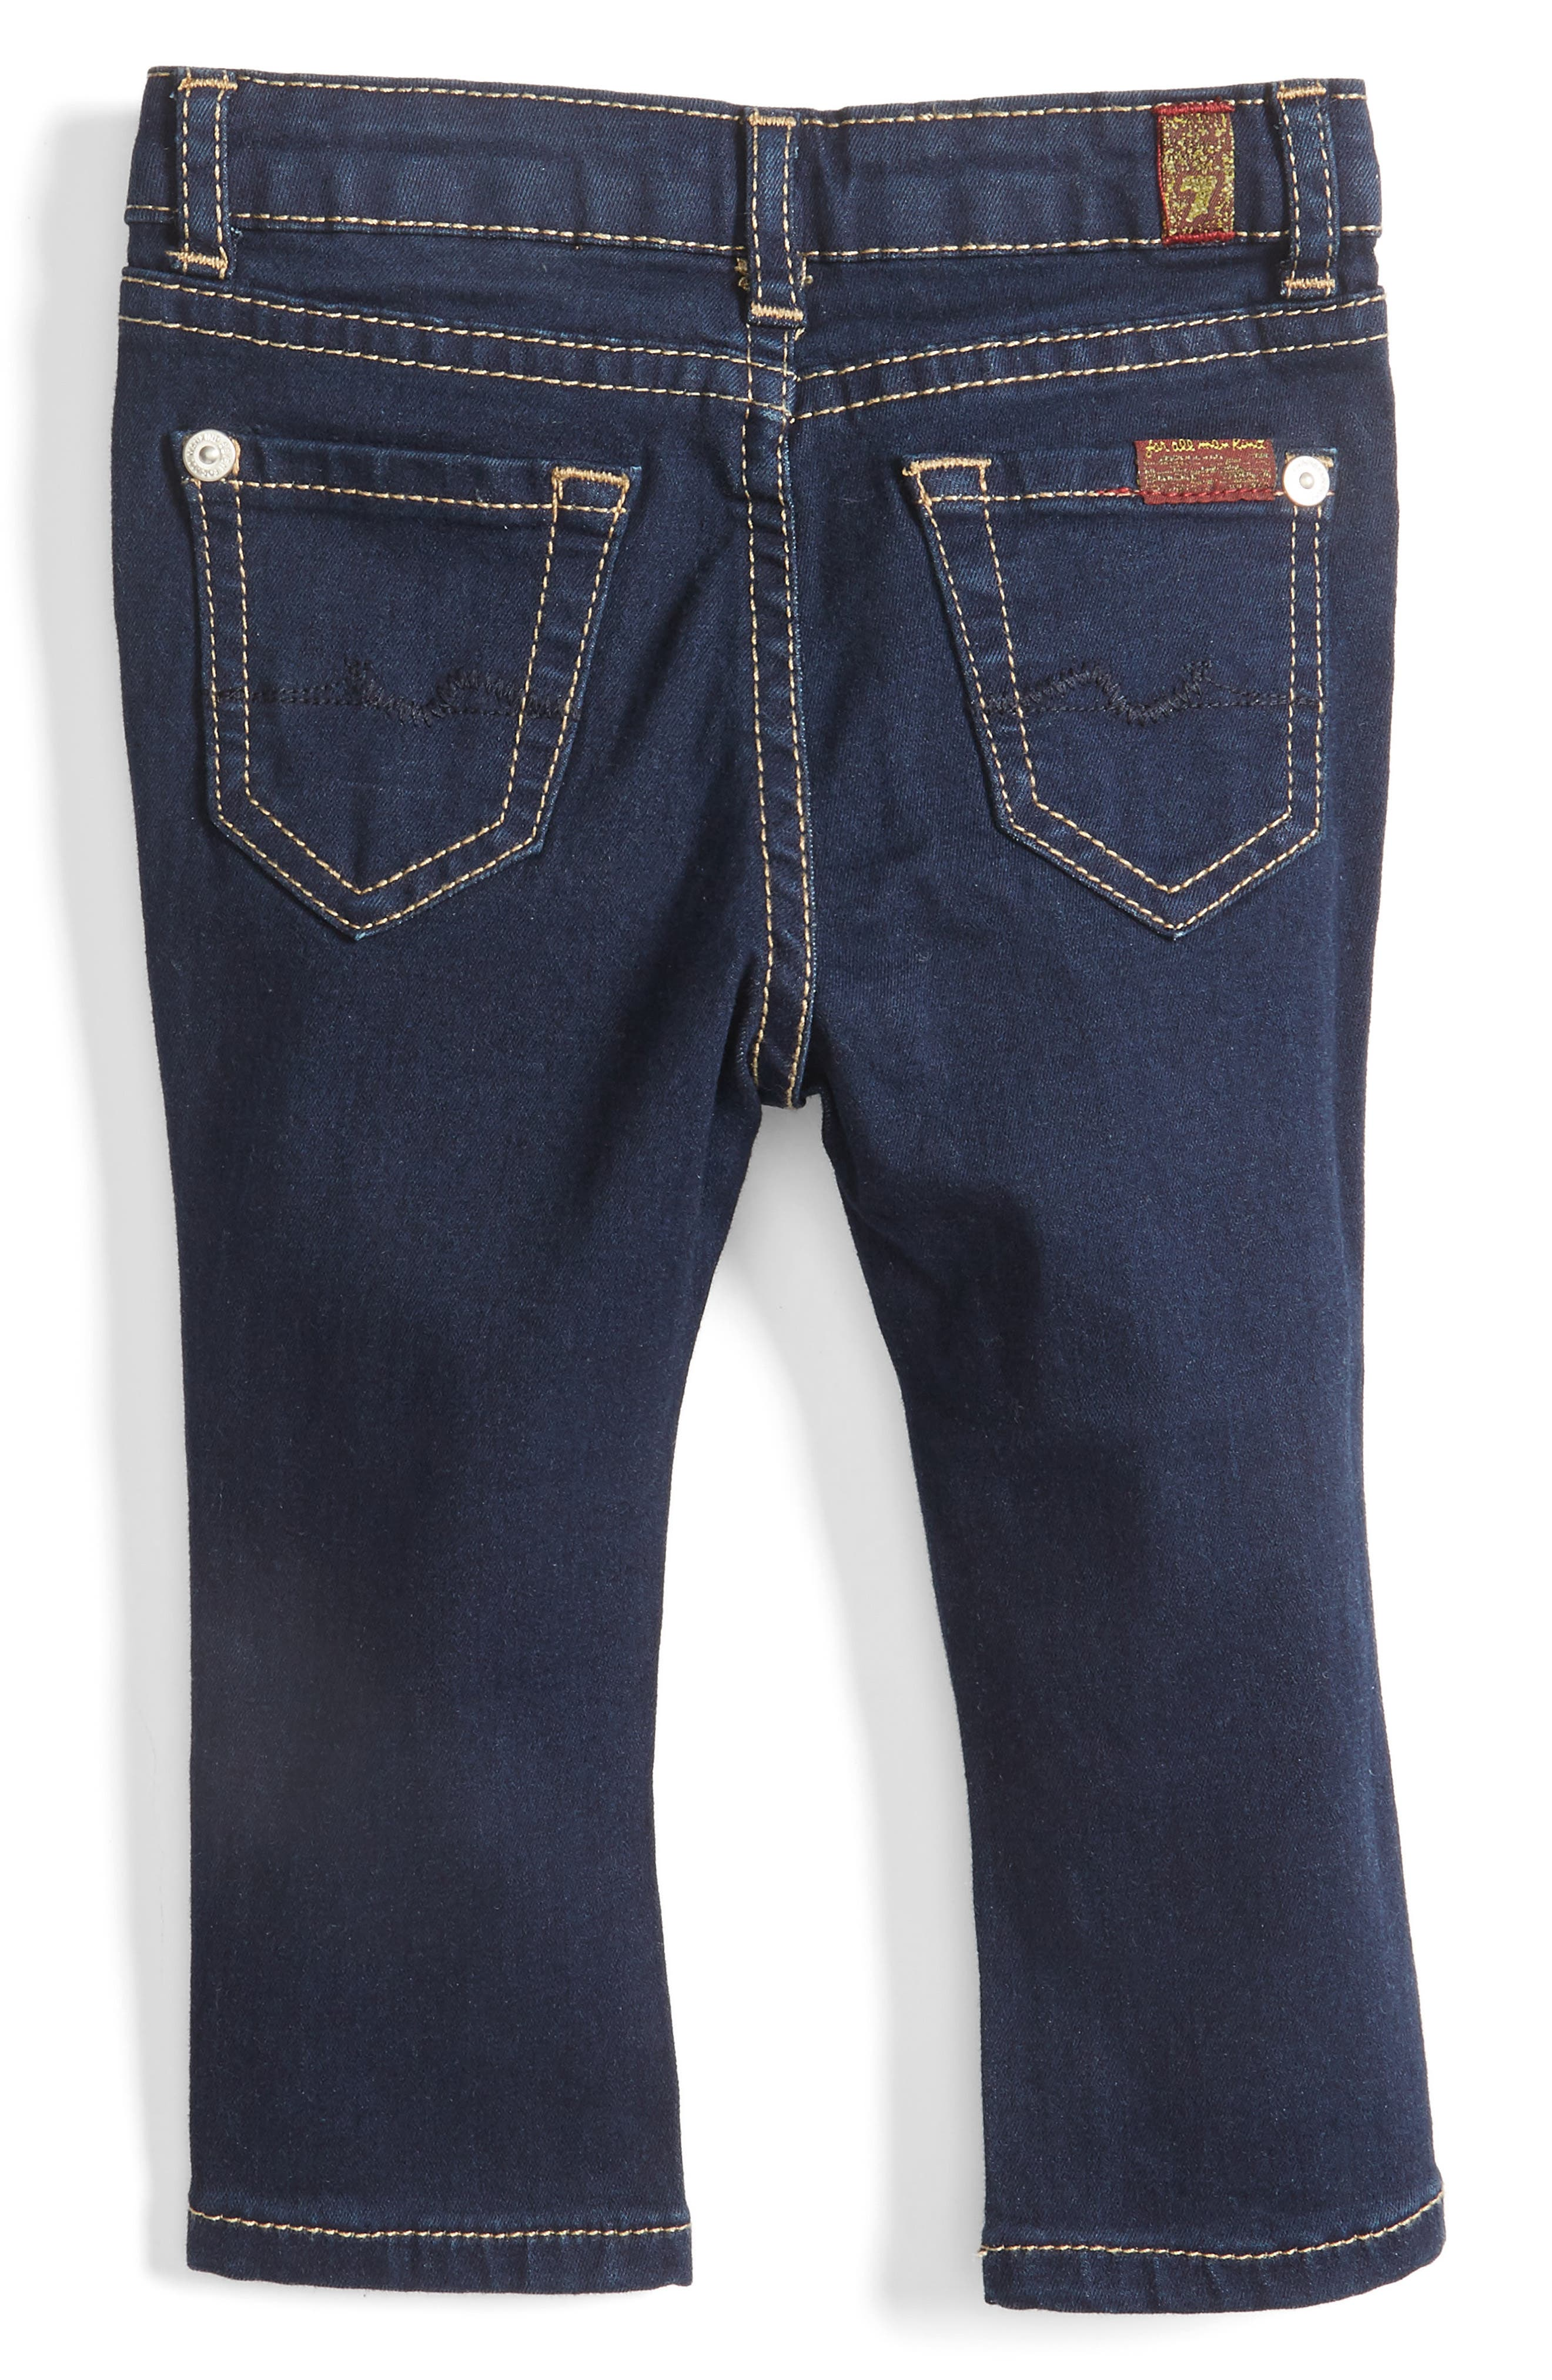 Skinny Fit Jeans,                             Main thumbnail 1, color,                             407